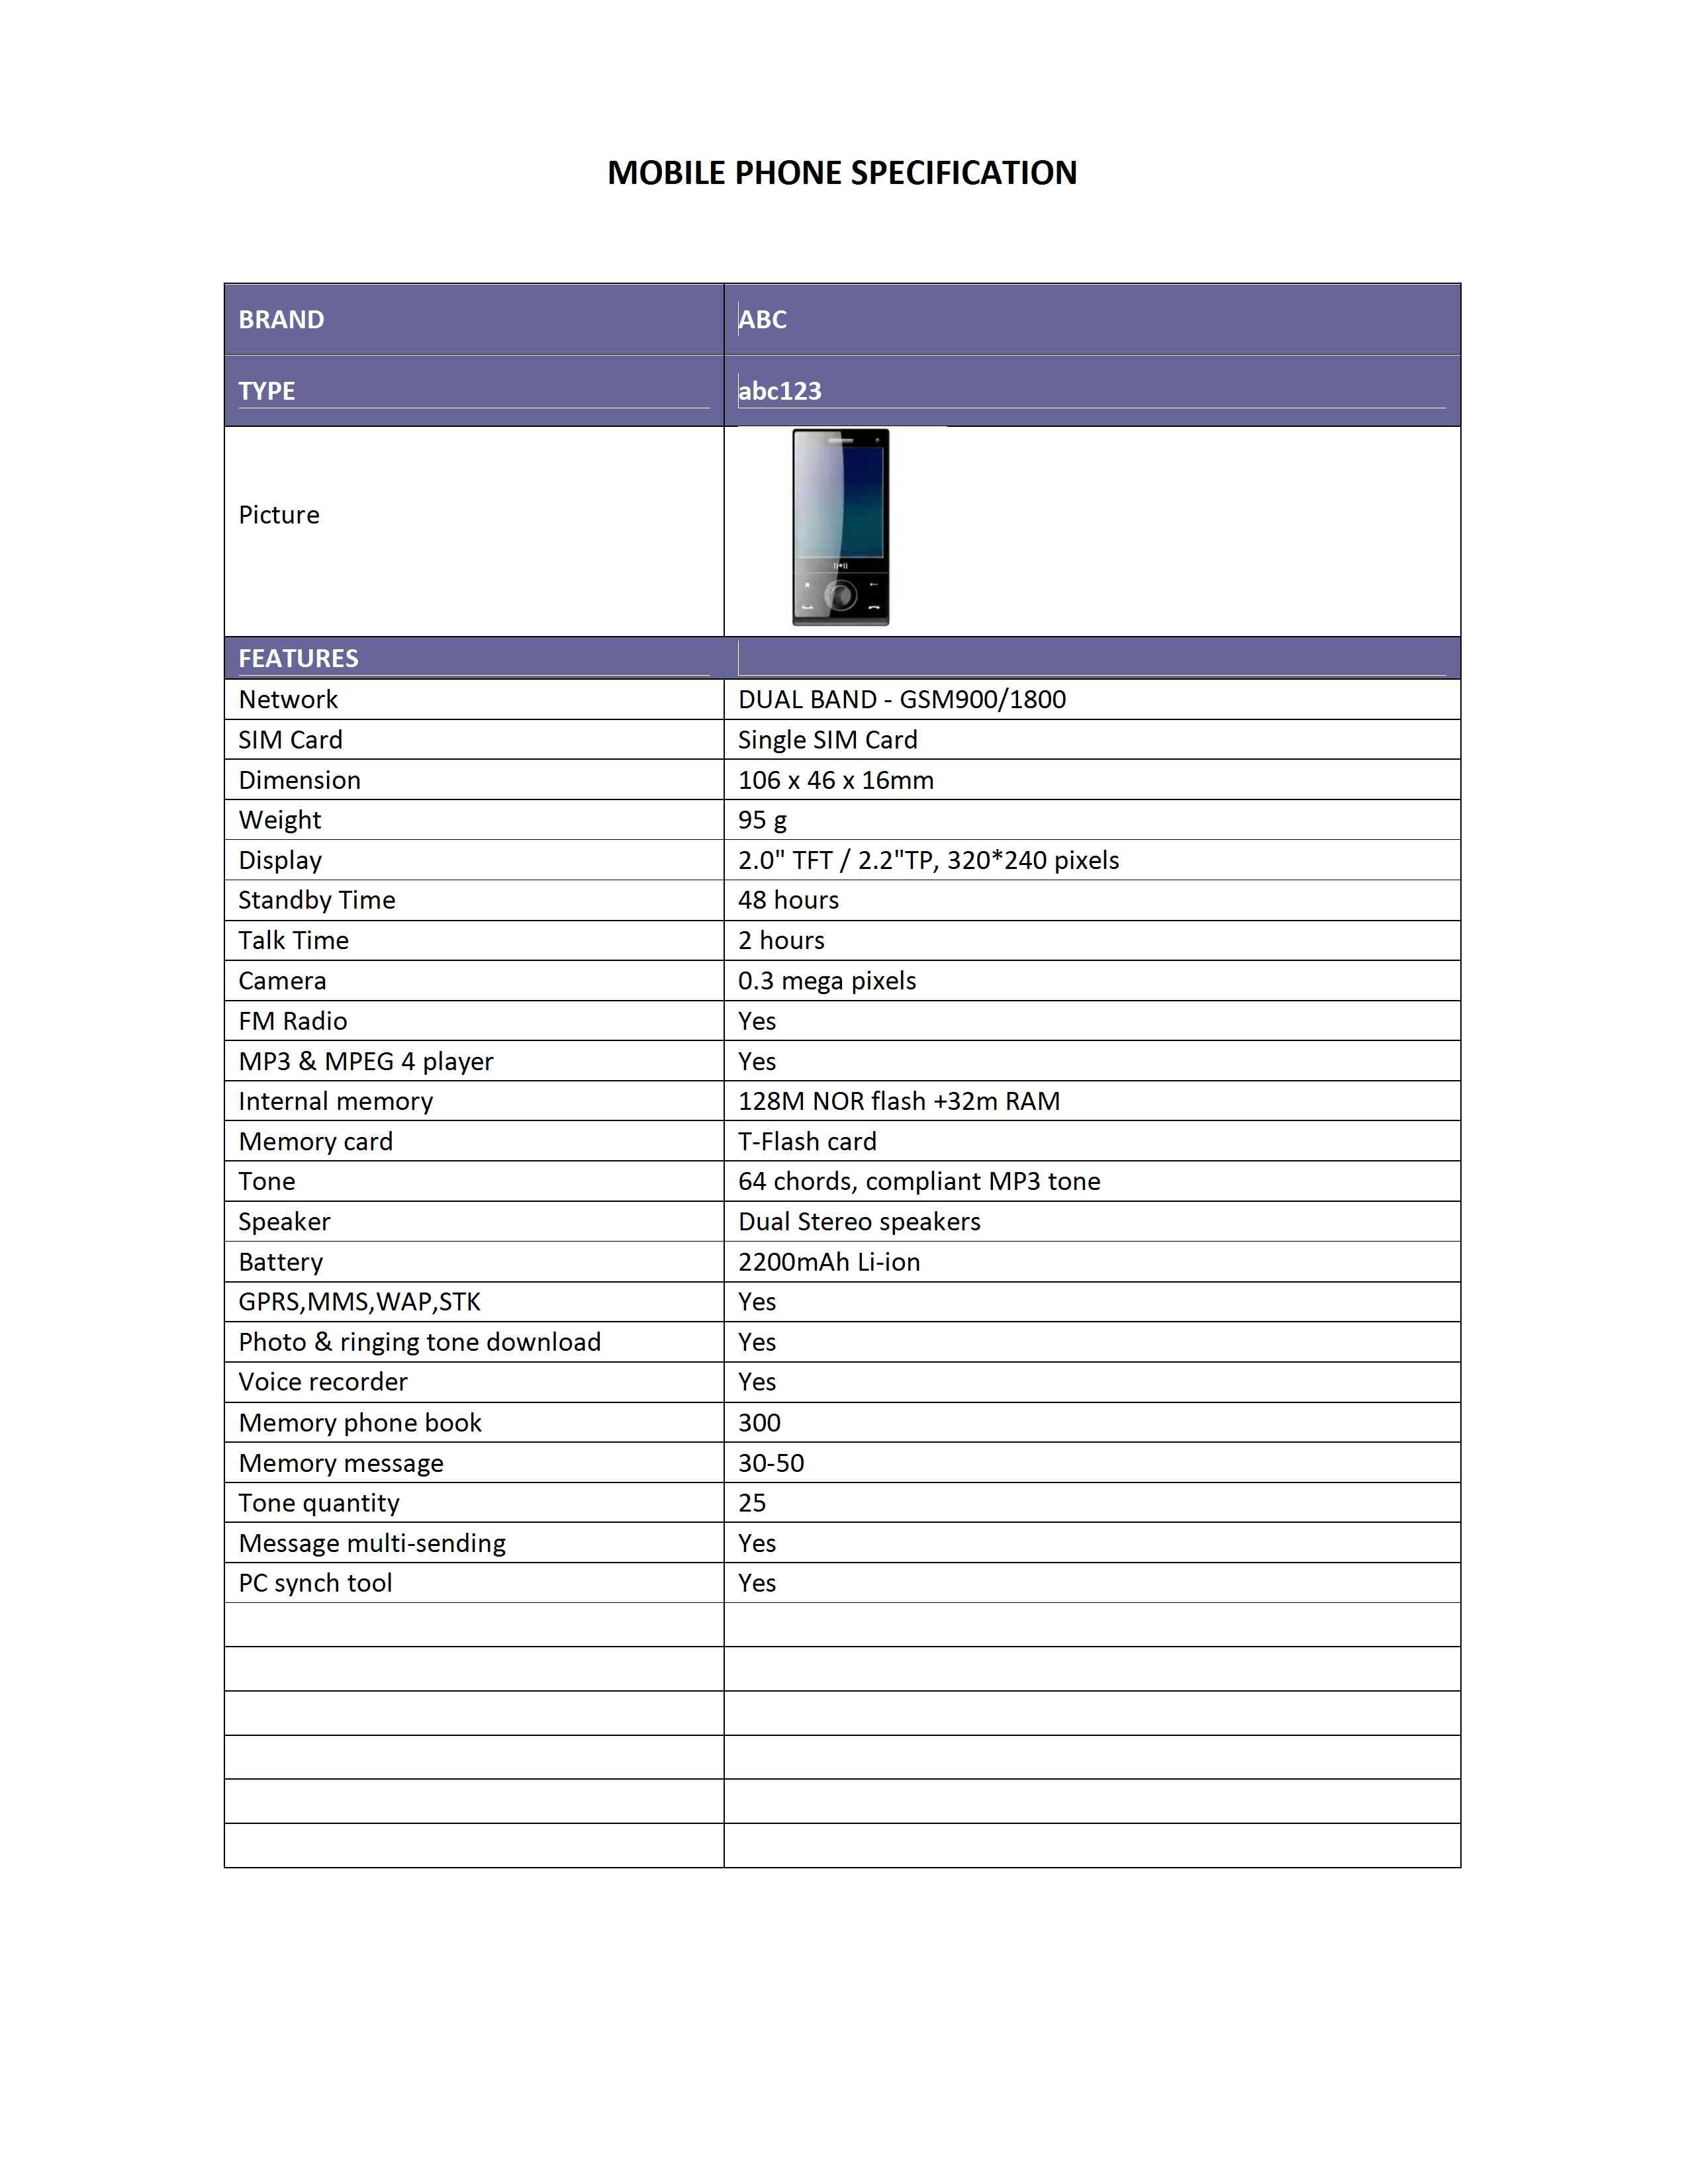 Mobile Phone Specification Template